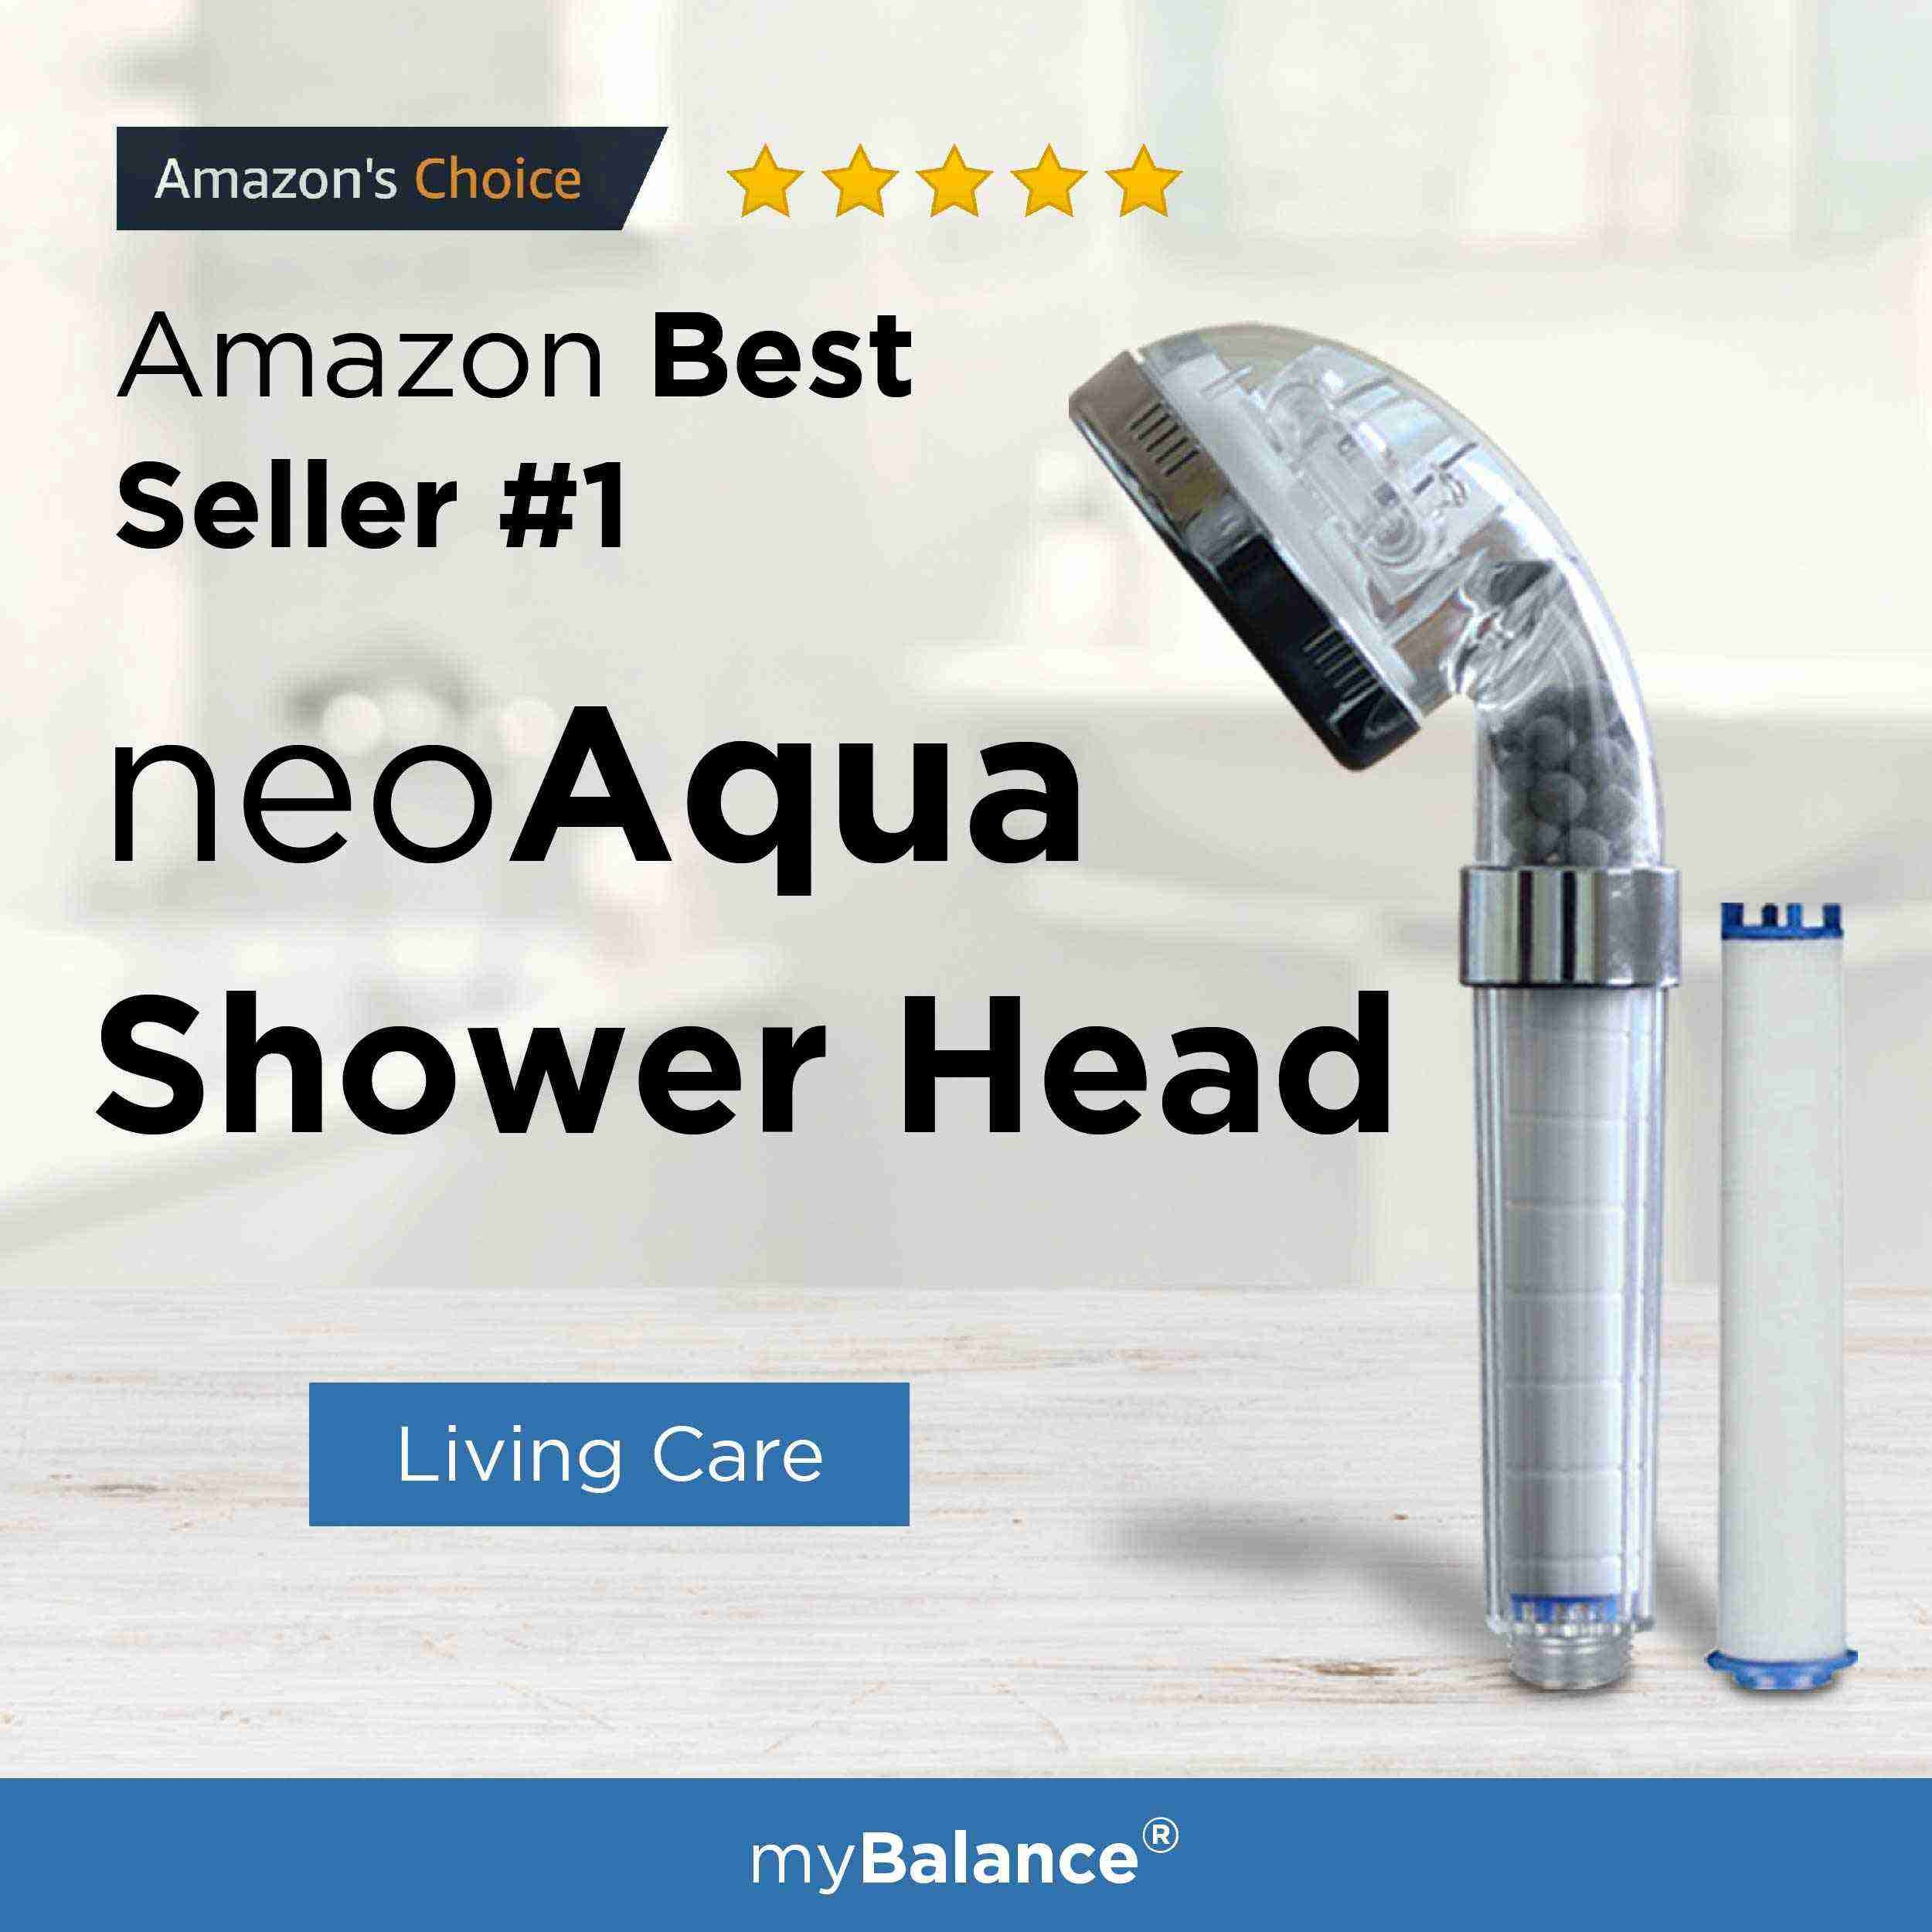 Neo Aqua Shower Head Provides A 2 Step Filter That Filters